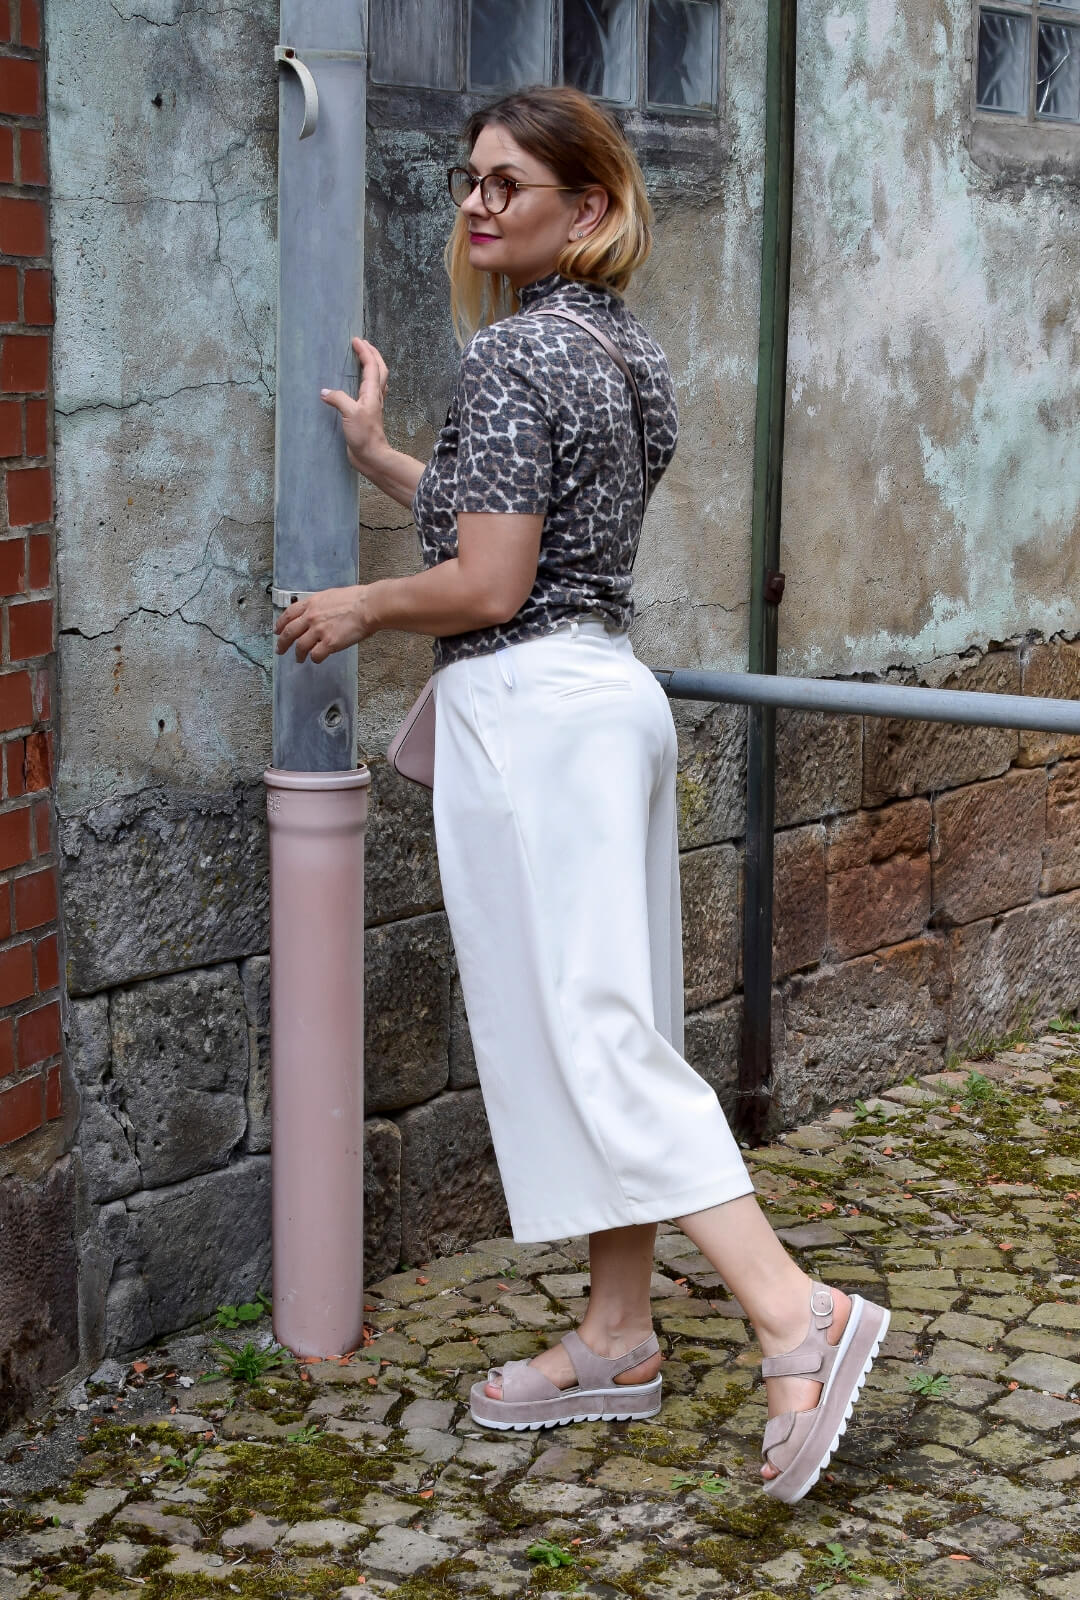 Weisse-Culotte-kombinieren-Outfit-Sommer